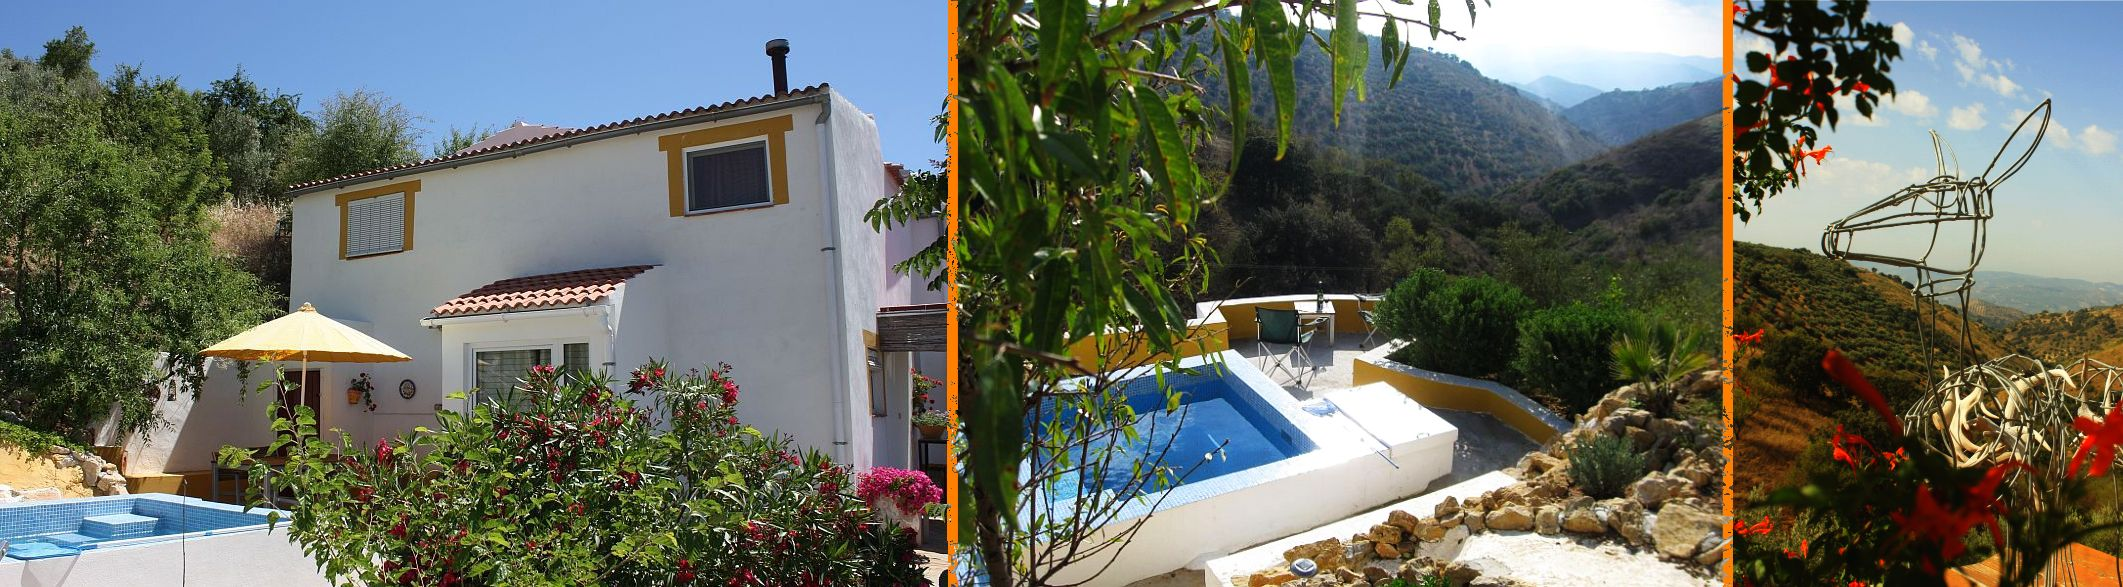 casa con guiño and view in the heart of Andalusia